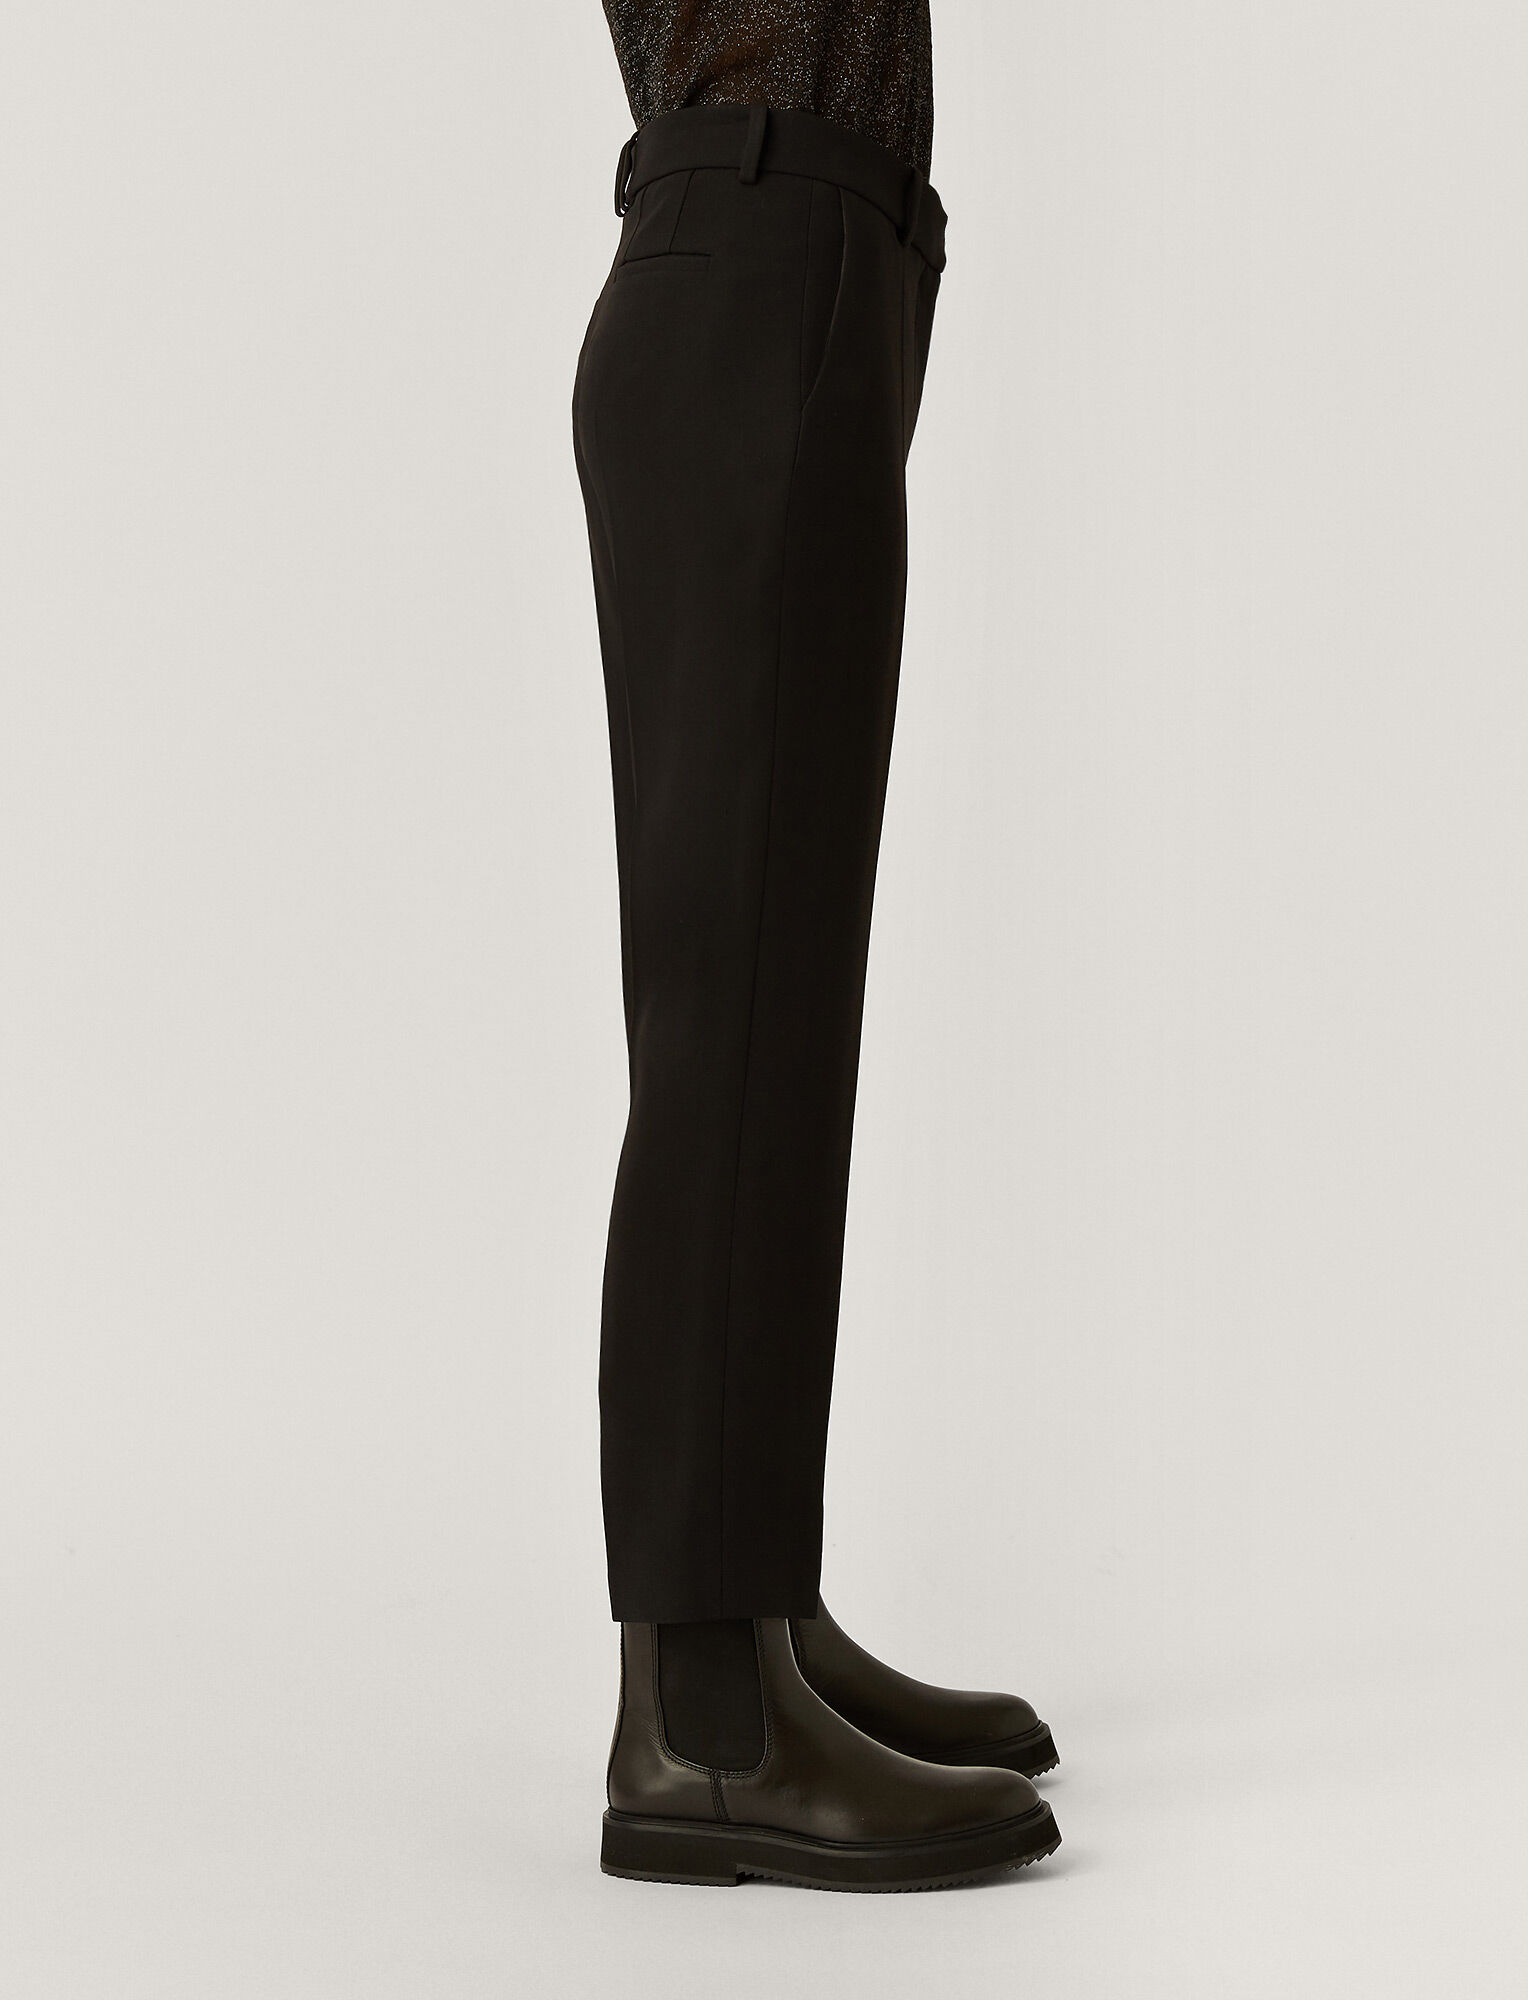 Joseph, New Cady Tape Trousers, in BLACK